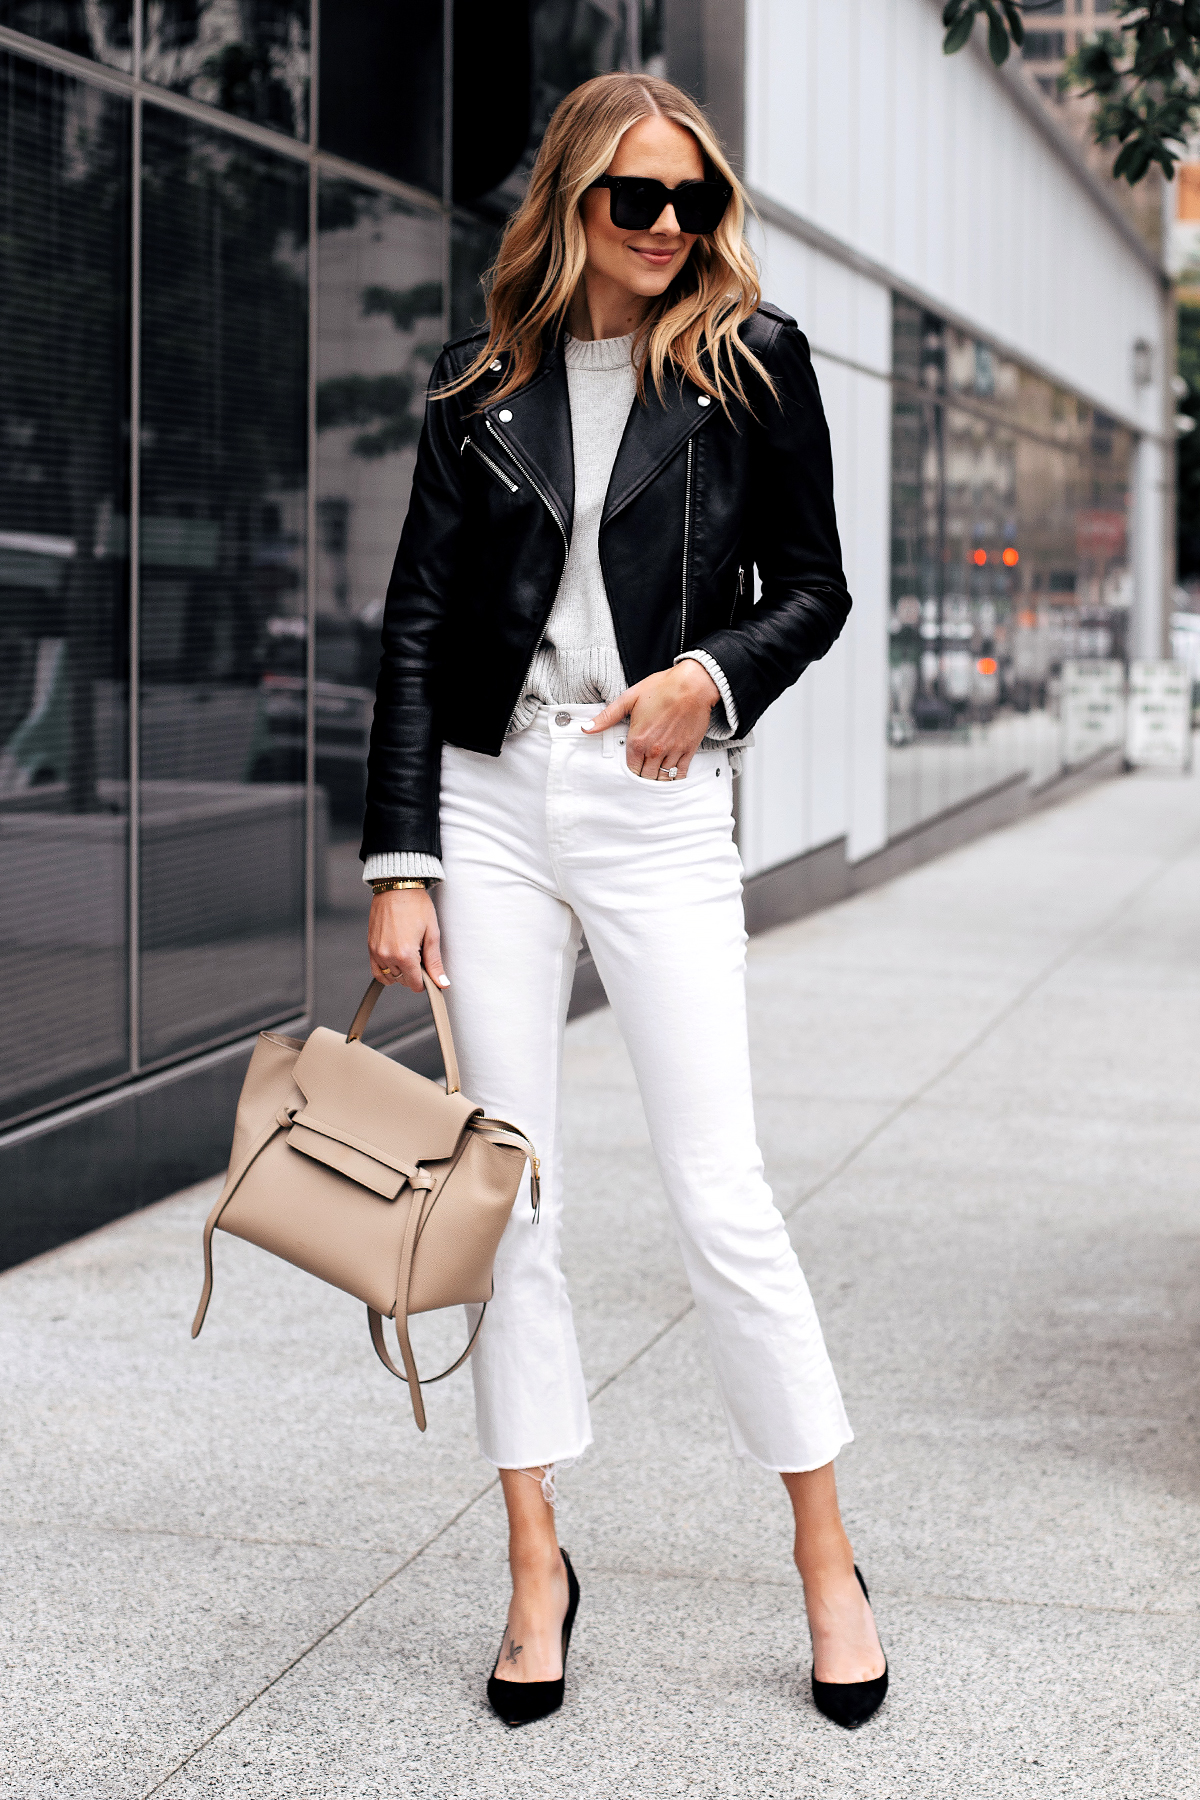 Fashion Jackson Capsule Wardrobe Wearing Club Monaco Black Leather Jacket Grey Sweater Everlane White Crop Jeans Black Pumps Celine Mini Belt Bag